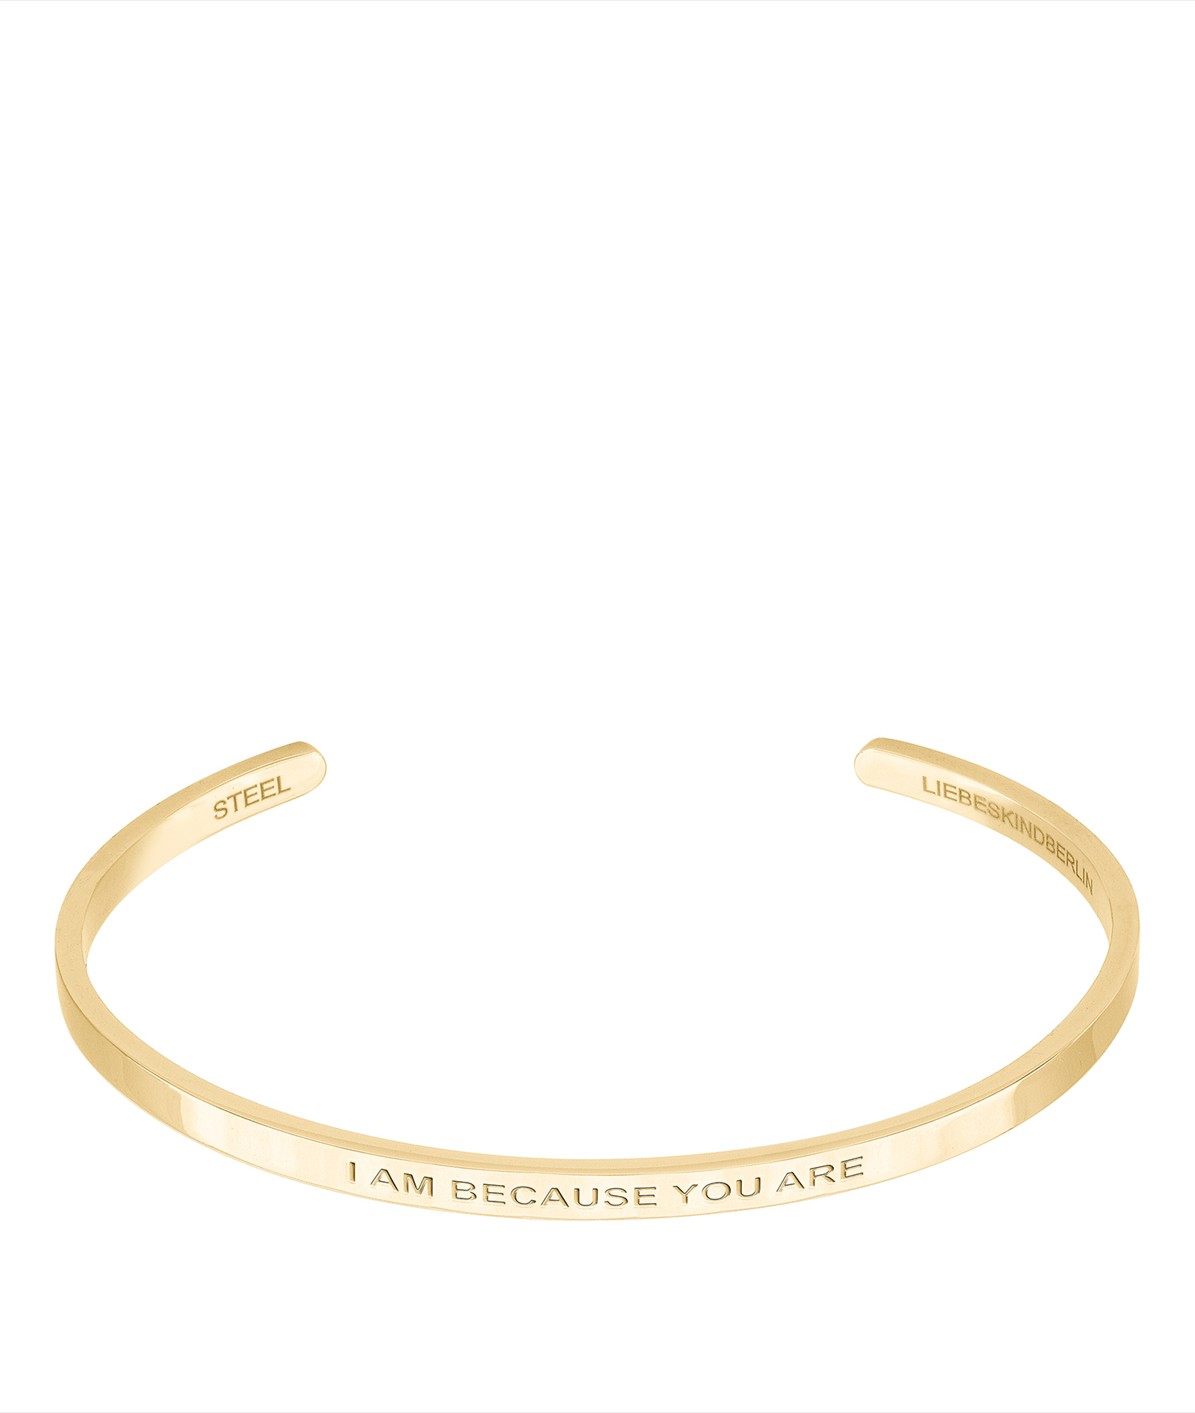 Bangle mit Statement-Gravur